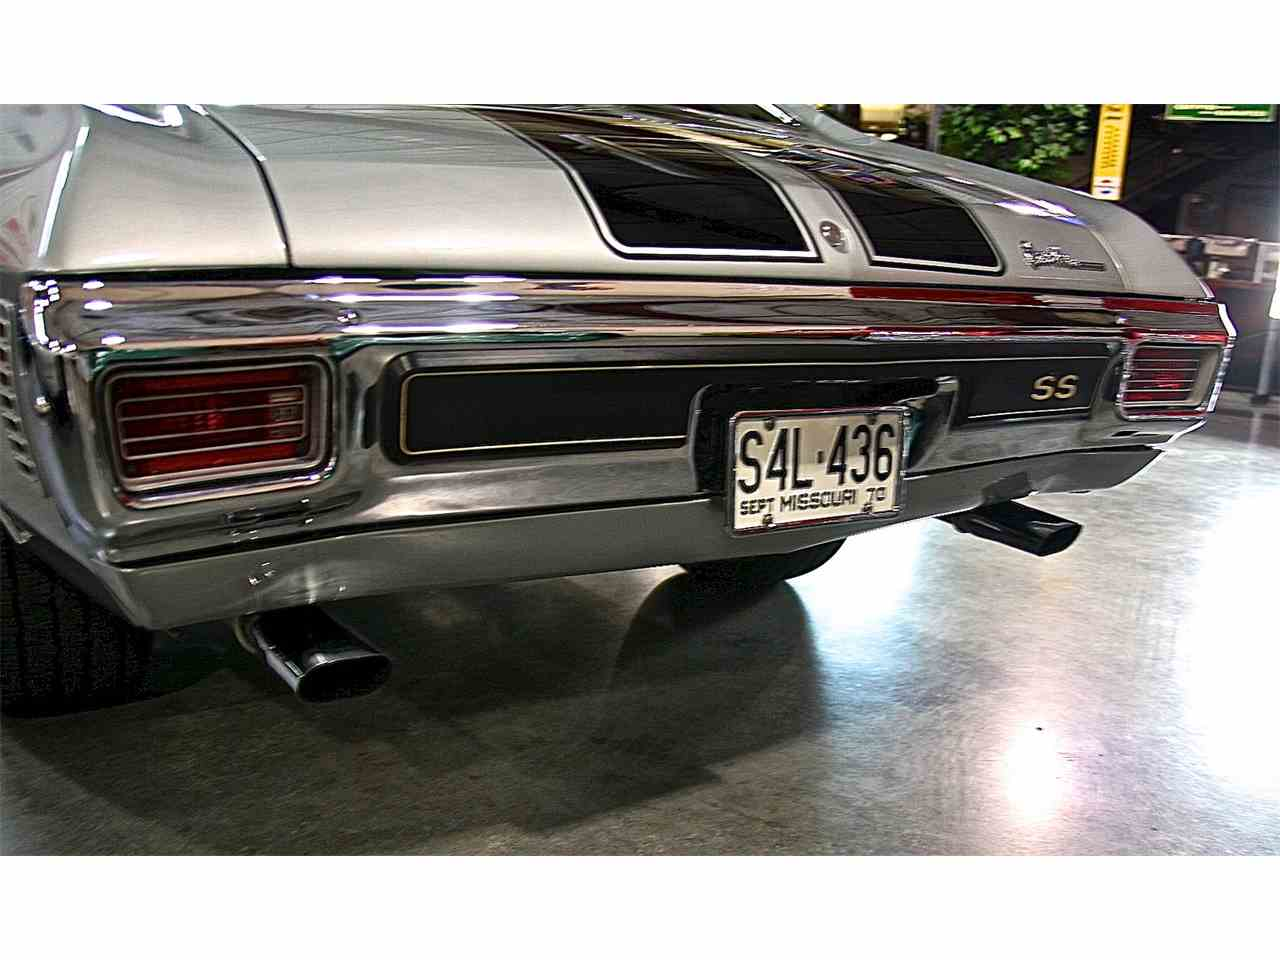 Large Picture of '70 Chevrolet Chevelle SS located in Fort Lauderdale Florida - $92,000.00 Offered by a Private Seller - L41W